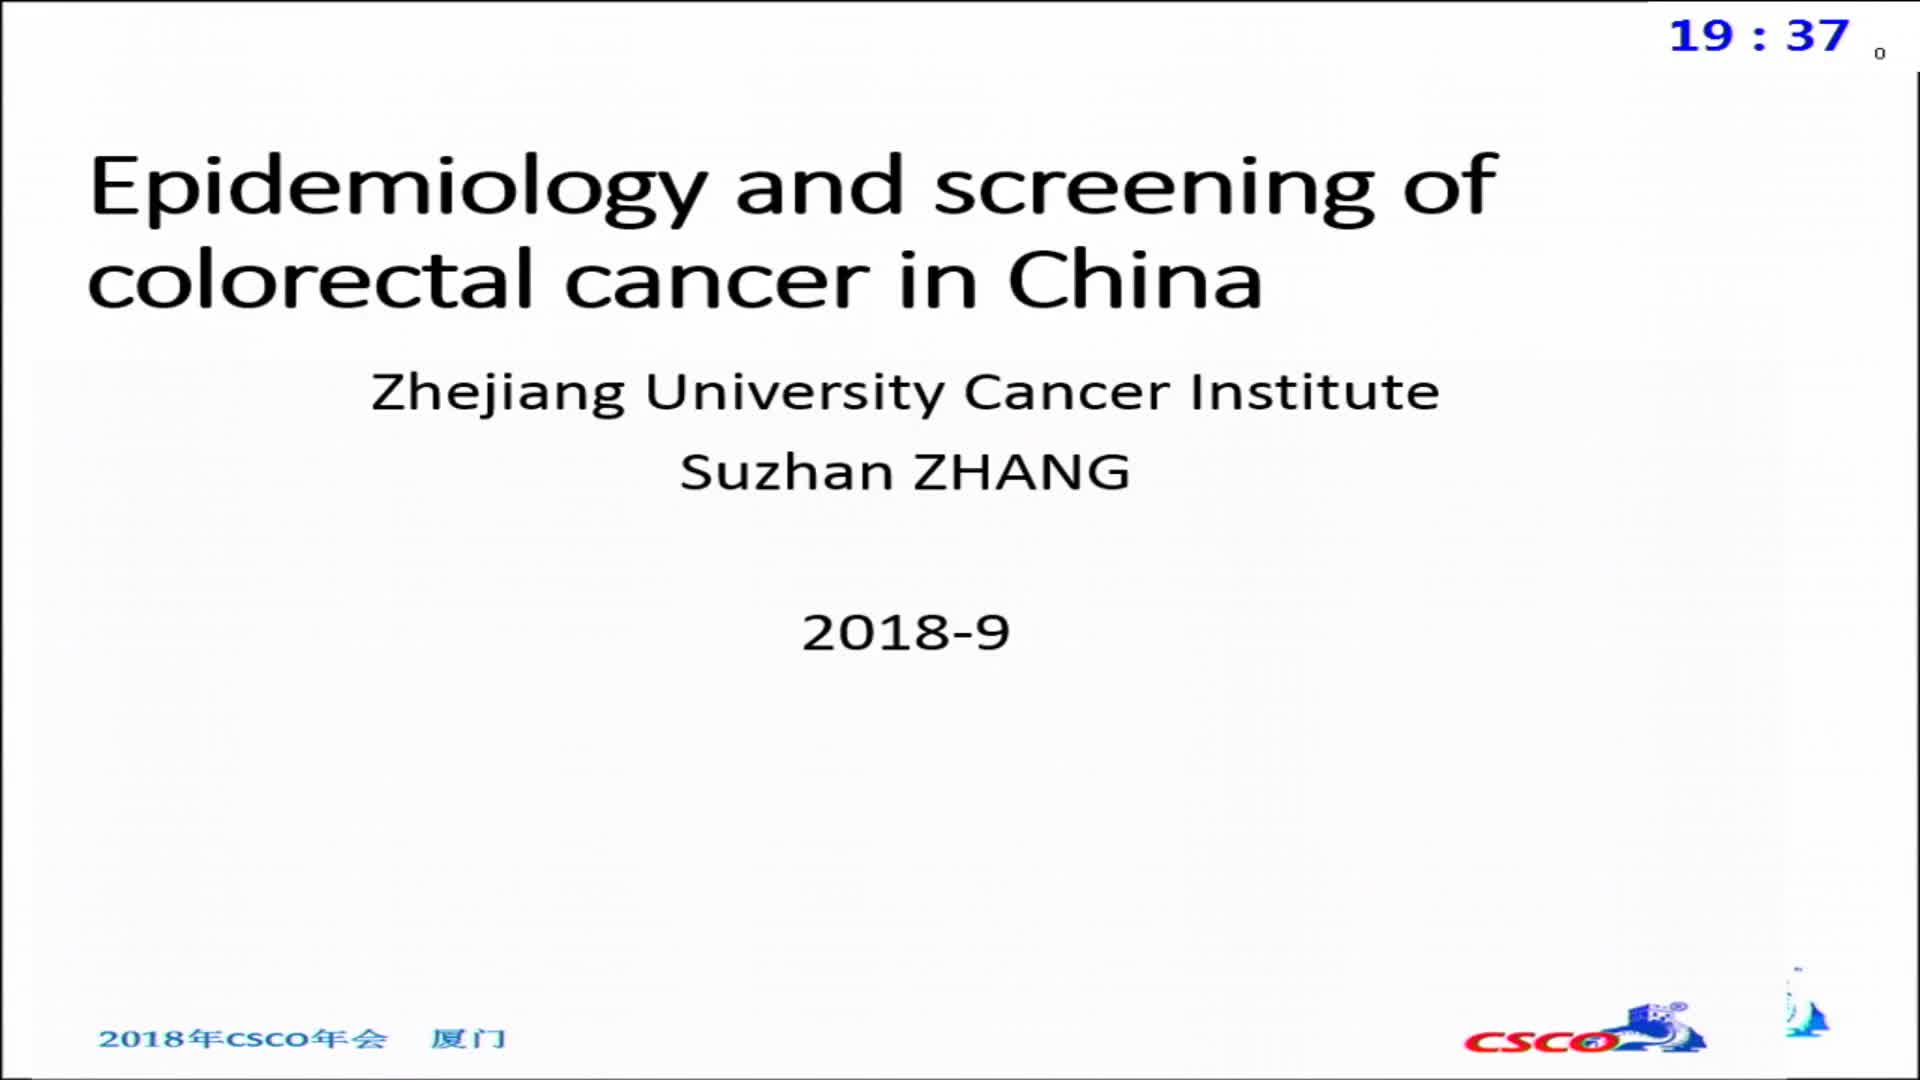 The colorectal cancer screening in China